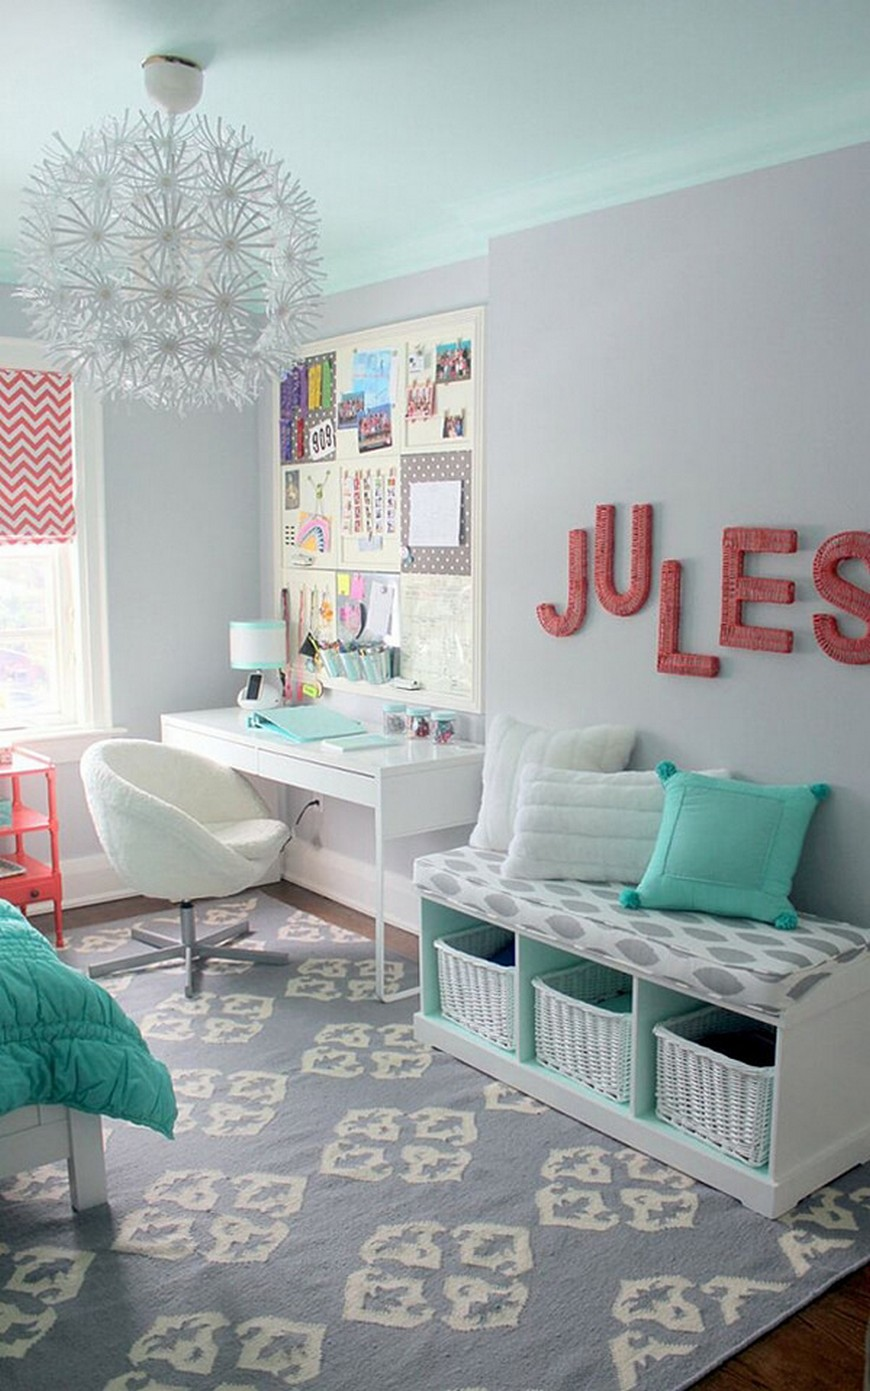 5 Decor Ideas for Kids You'll Absolutely Love! 5 decor ideas 5 Decor Ideas for Kids You'll Absolutely Love! 5 Decor Ideas for Kids Youll Absolutely Love 5